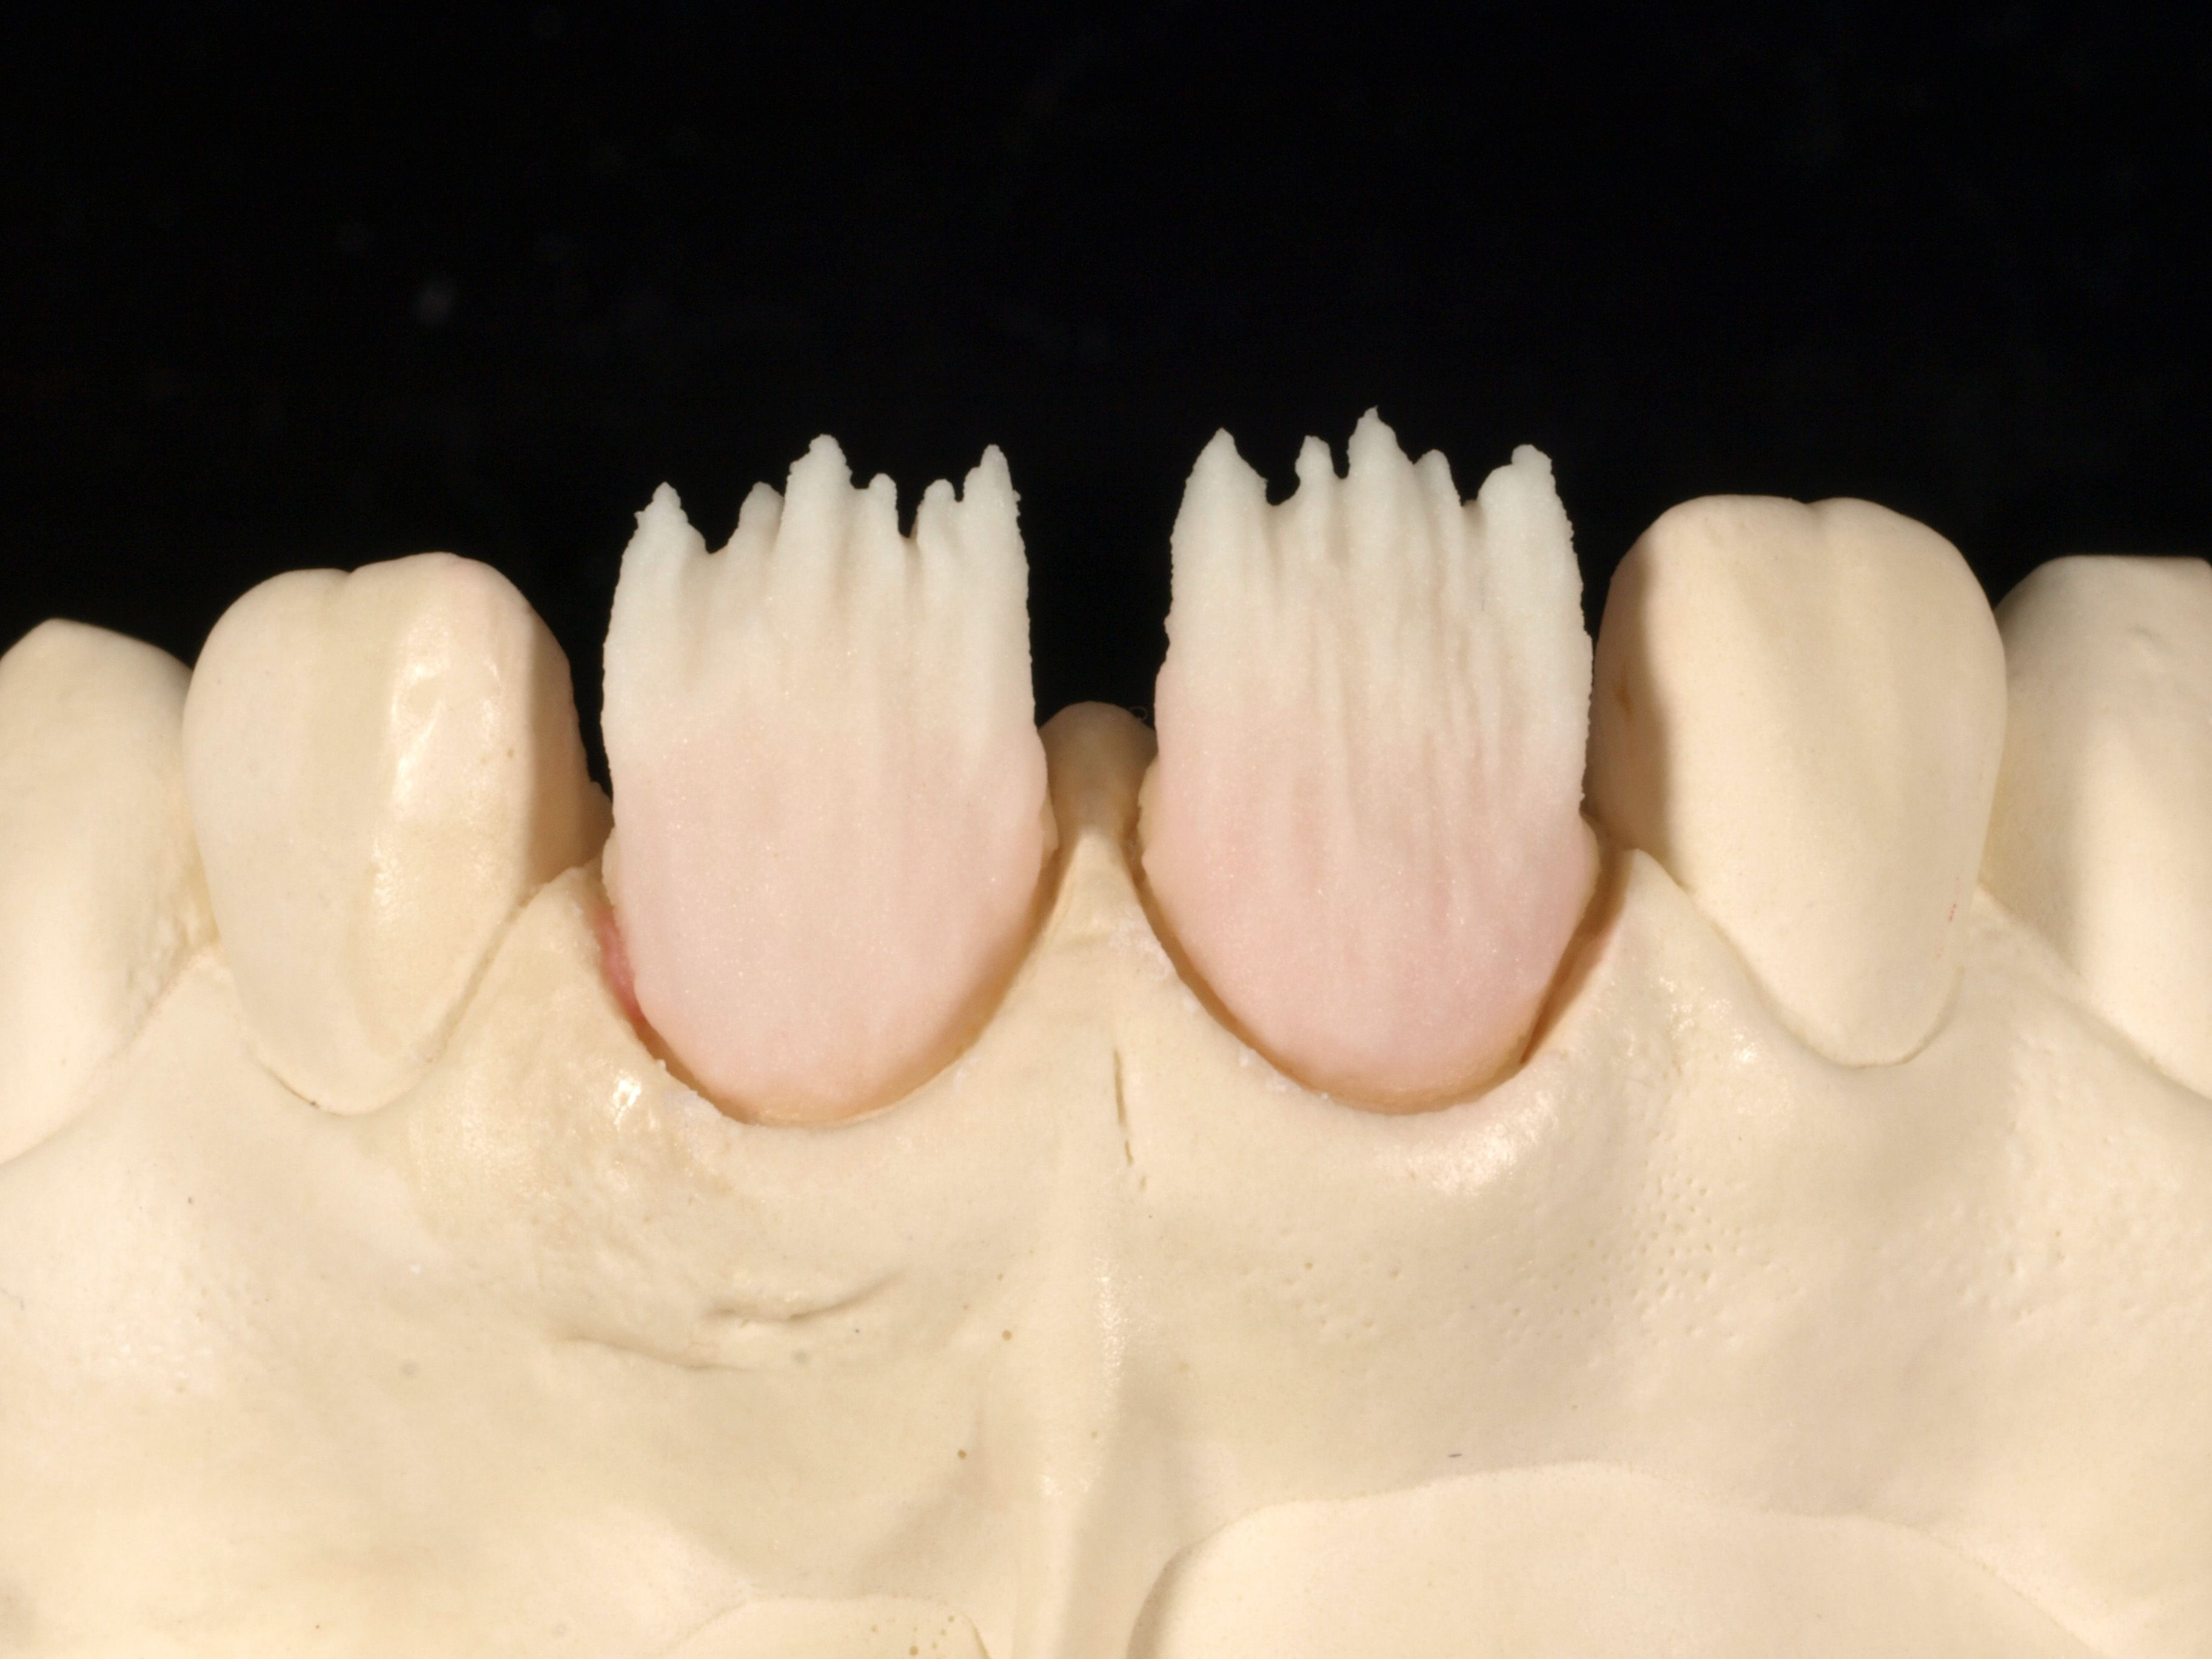 6 Applying Opacious Body Oba1 For Mamelon Structure Apply Body A2b To Form A High Chromatized Effect In The Cer Dental Art Dental Ceramics Dental Anatomy